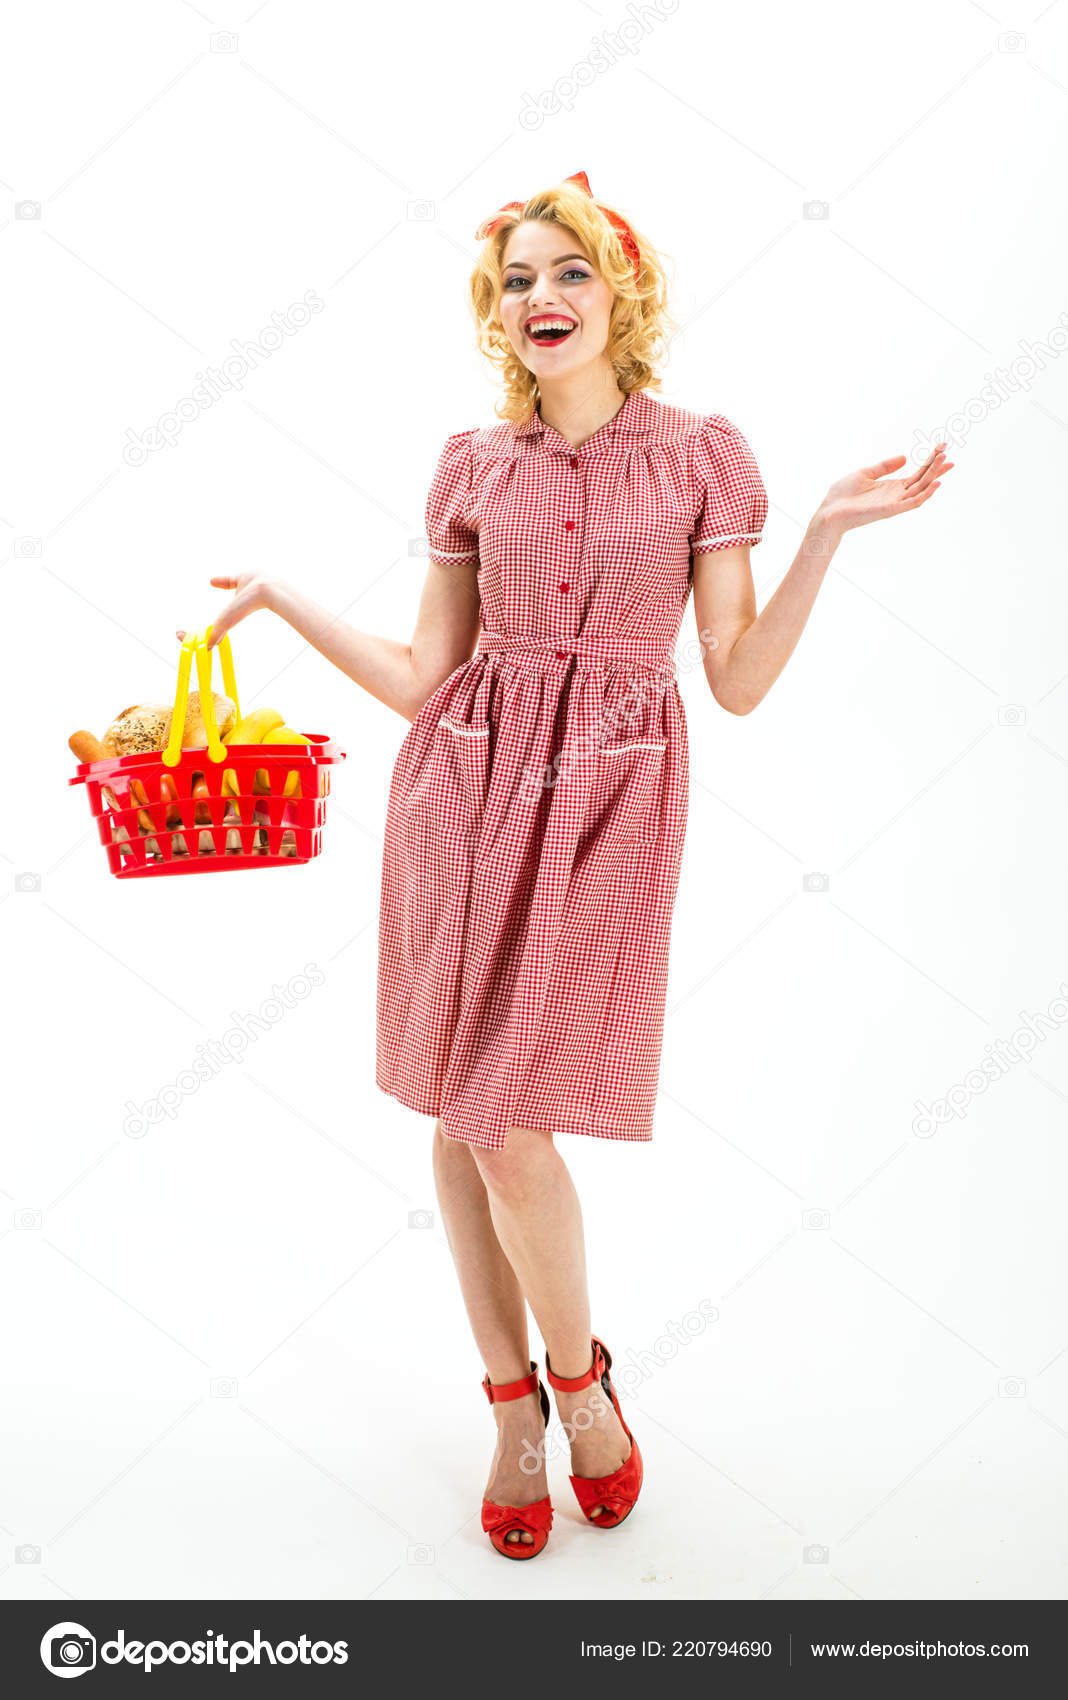 3dafb8c9f23 Going for shopping. happy retro woman go shopping. I want to buy this.